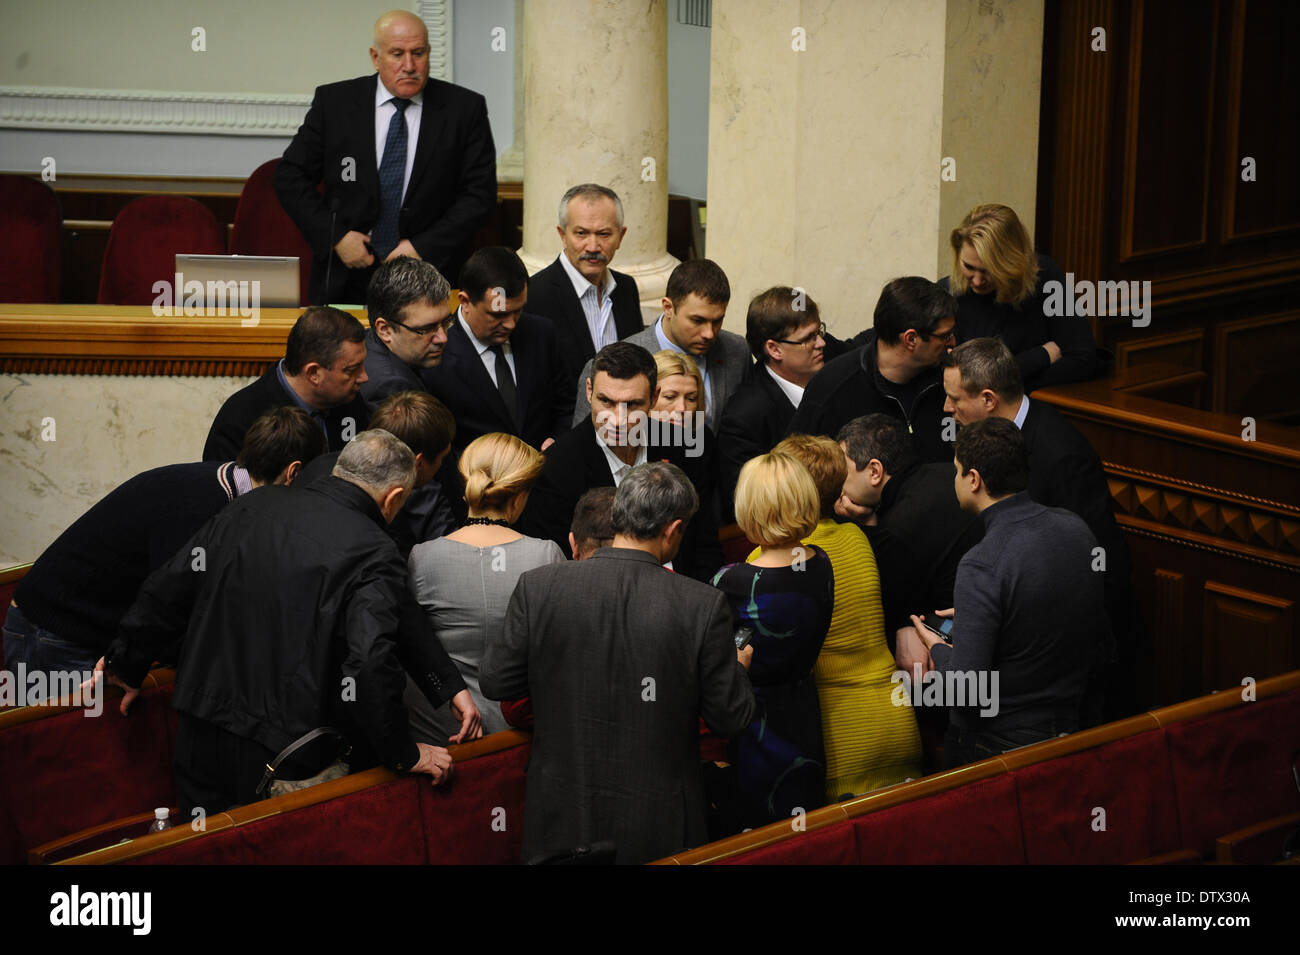 Kiev, Ukraine. 24th Feb, 2014. Ukrainian political opposition leader Vitaly Klitschko (C) talks with lawmakers before a session at the parliament in Kiev, Ukraine on Feb. 24, 2014. Credit:  Dai Tianfang/Xinhua/Alamy Live News - Stock Image